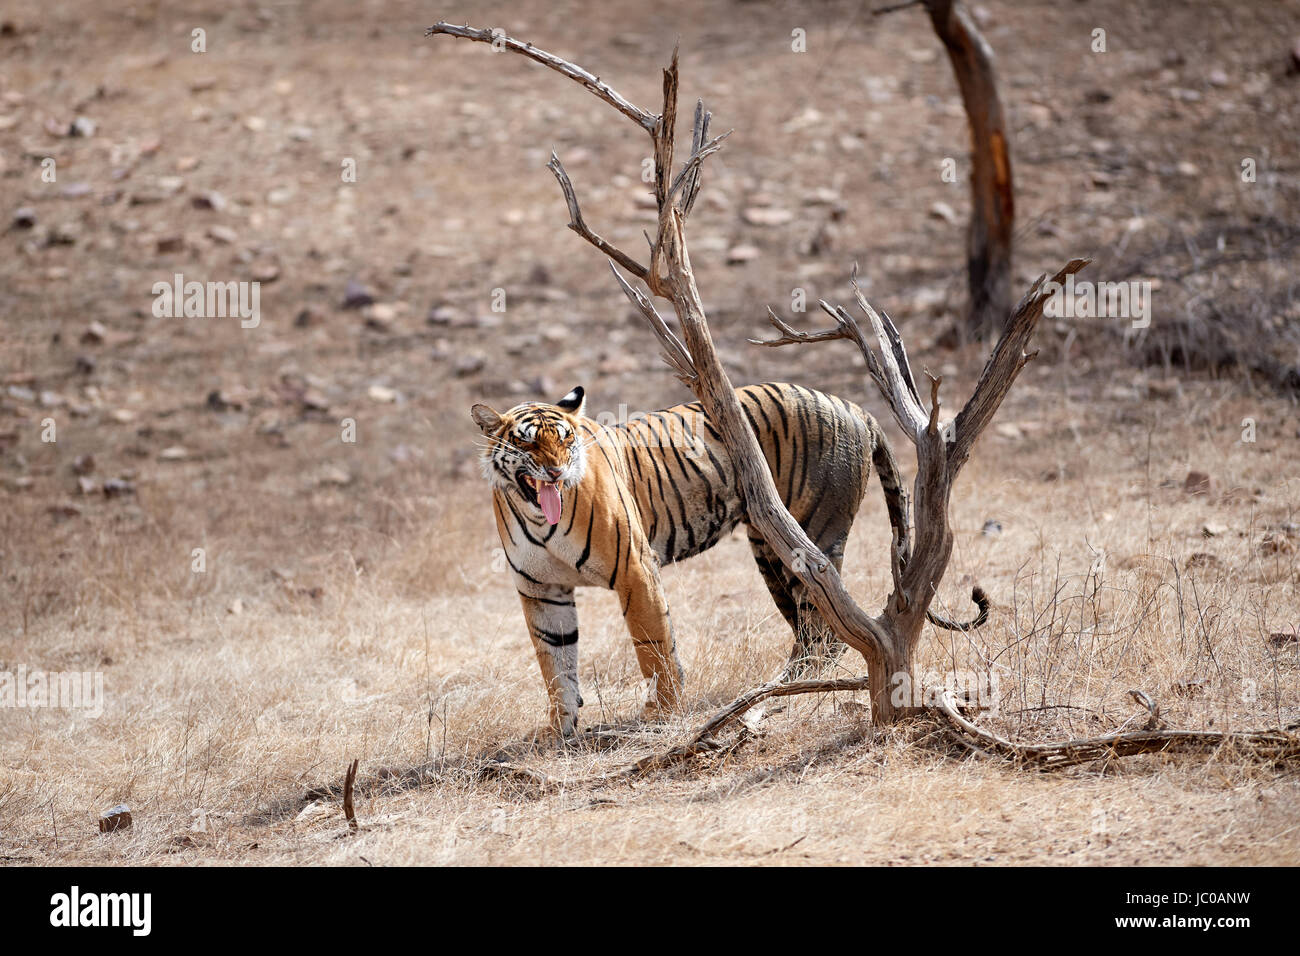 A female Bengal Tiger doing the Flehmen response after sniffing a tree. - Stock Image